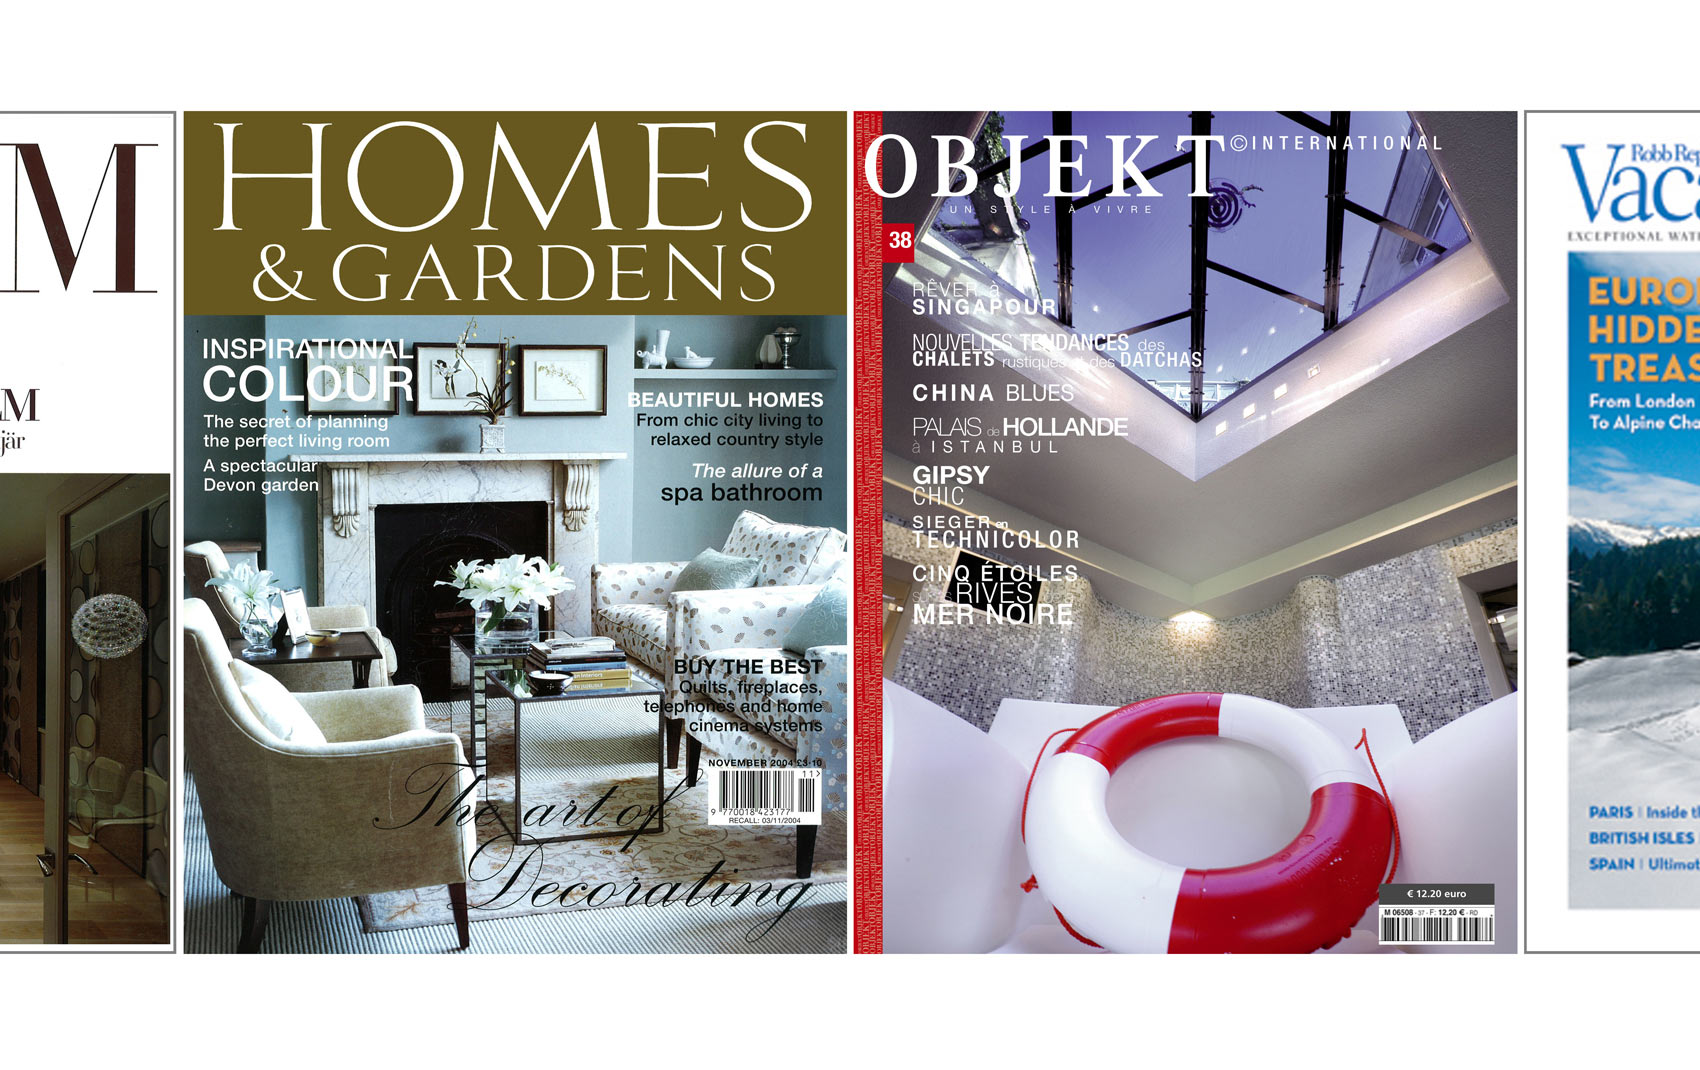 Featured in Home & Gardens and Objekt magazines